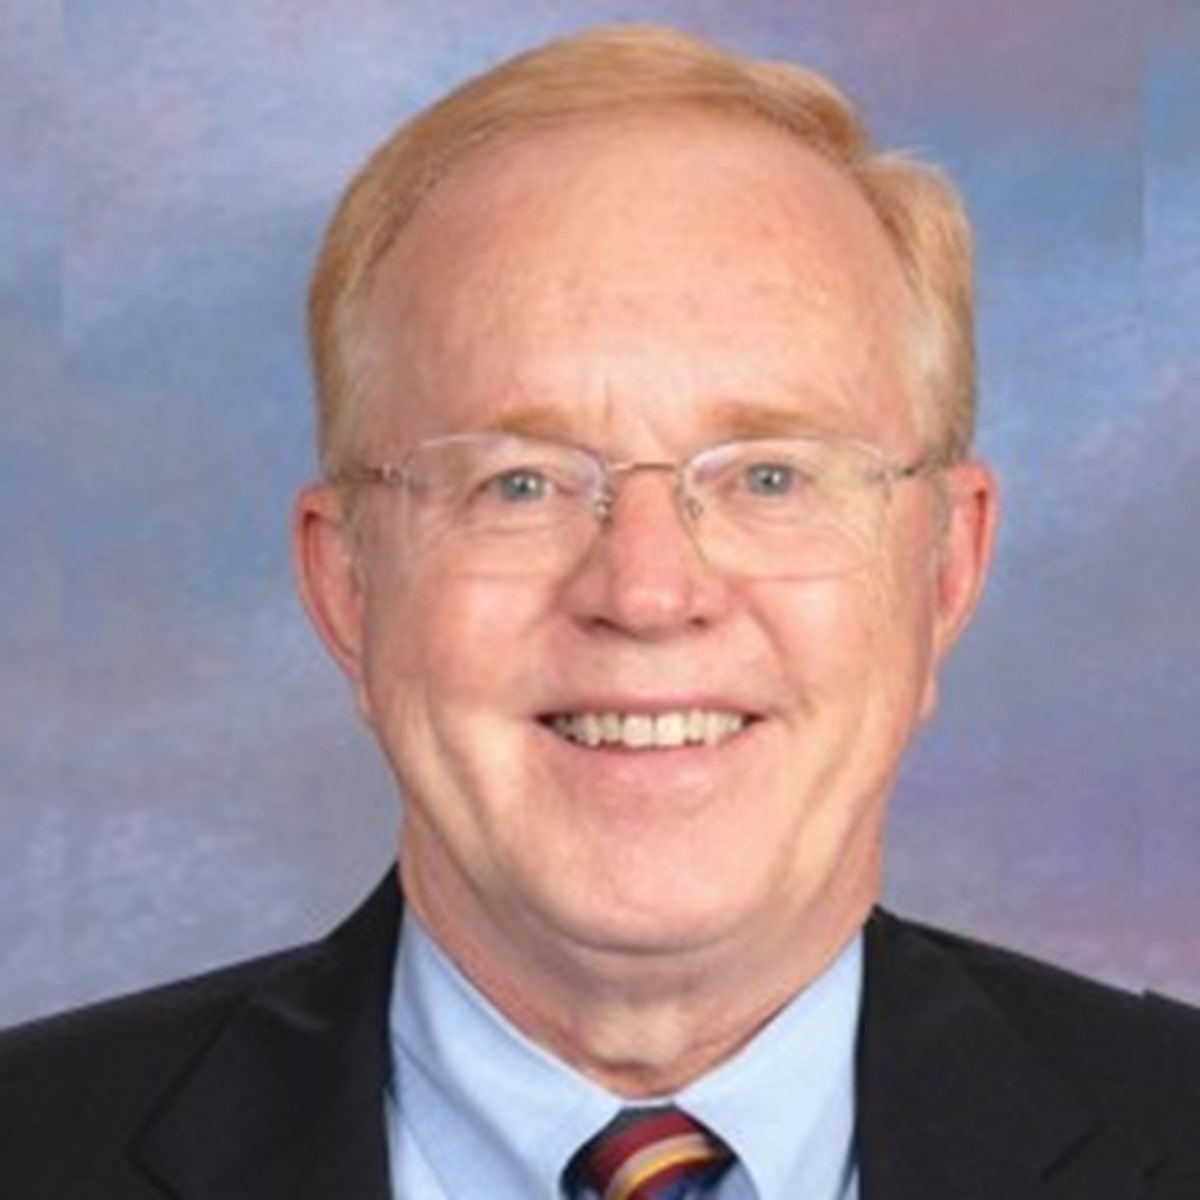 BILL HULSEY LAWYER - HULSEY PC Profile Picture